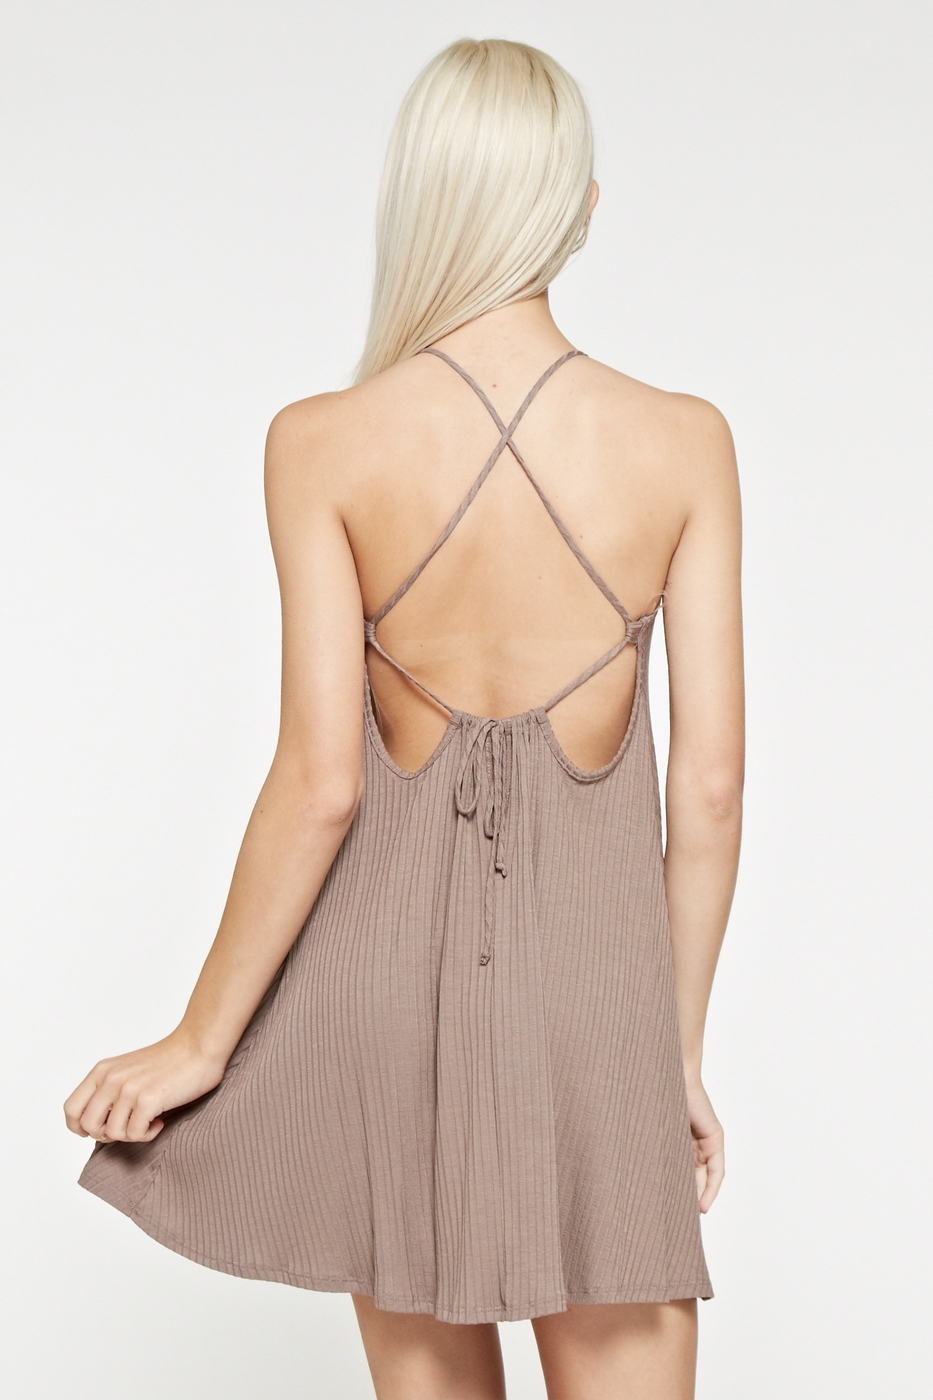 CROSS OPEN TIE BACK DRESS - orangeshine.com